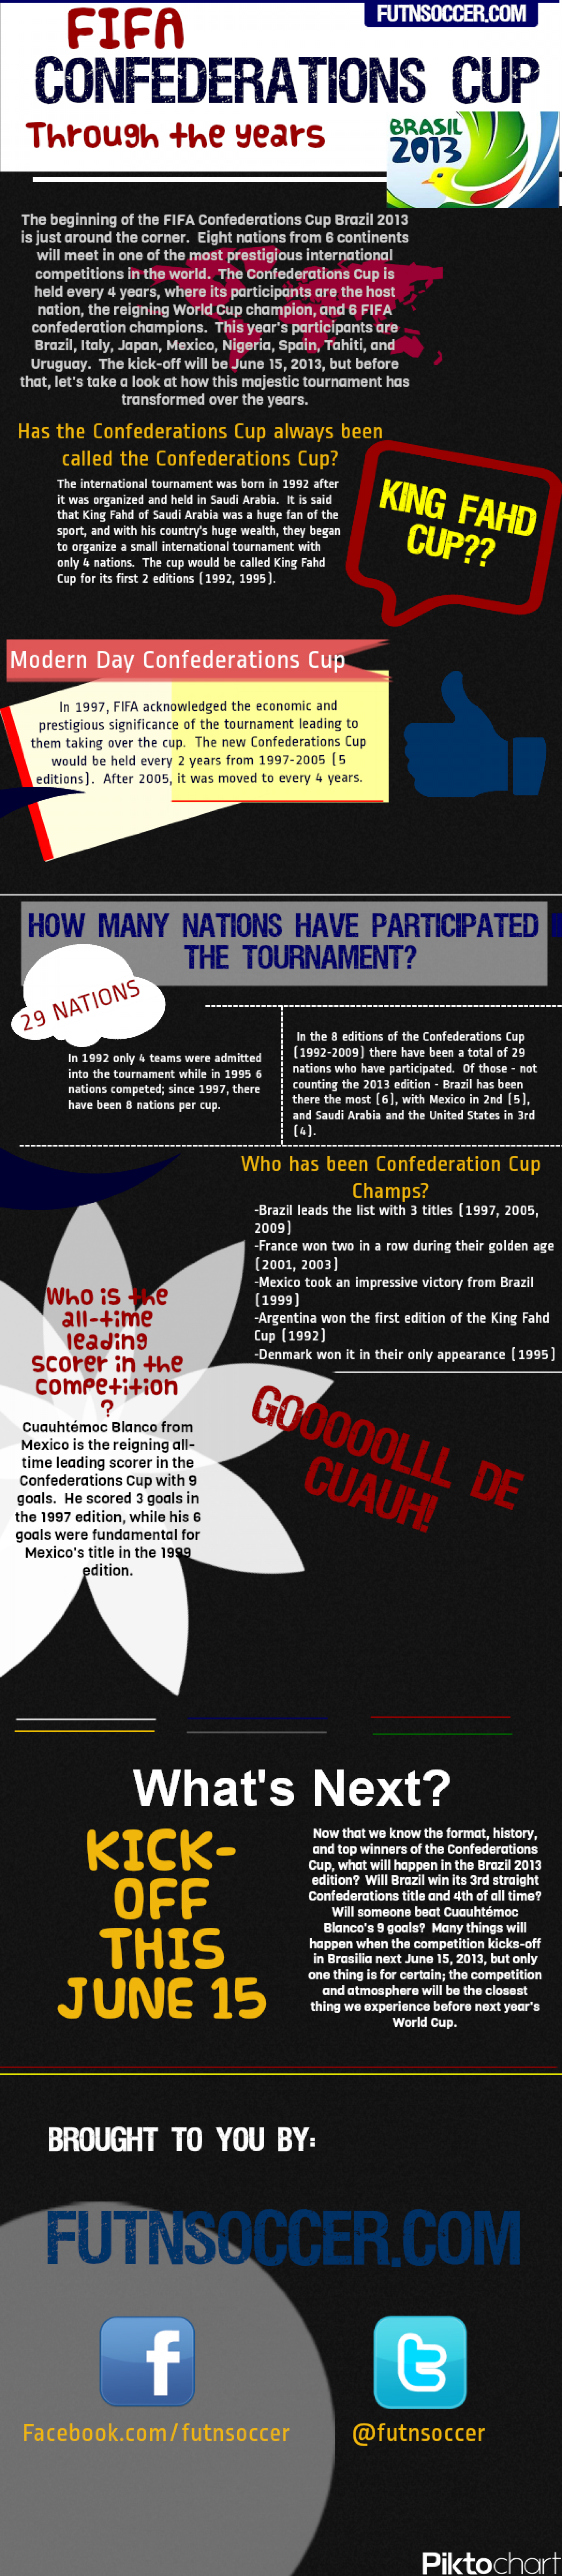 FIFA Confederations Cup - A Brief History Infographic